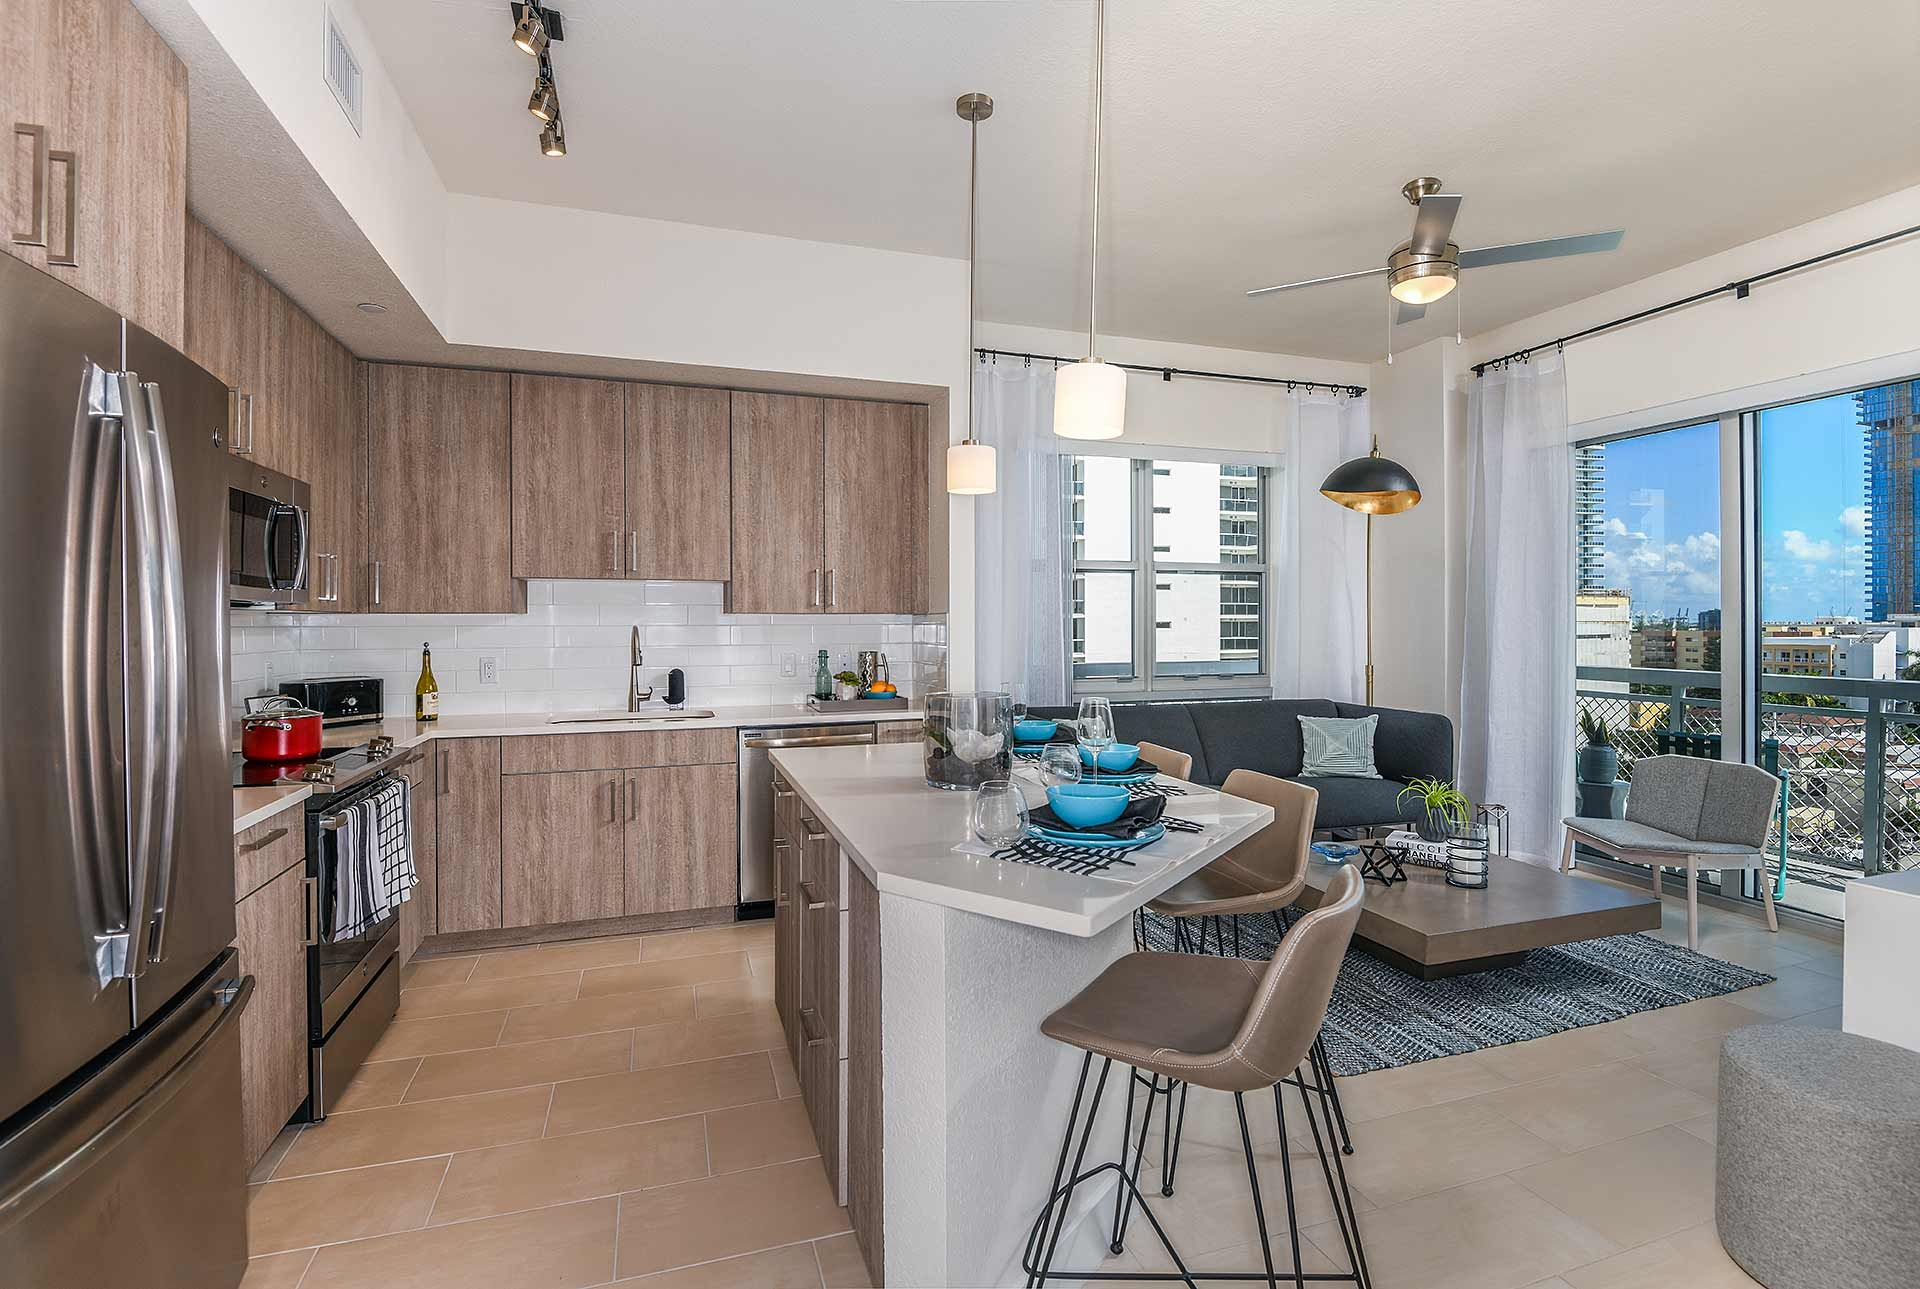 Apartment kitchen with stainless steel appliances and large bar with seating